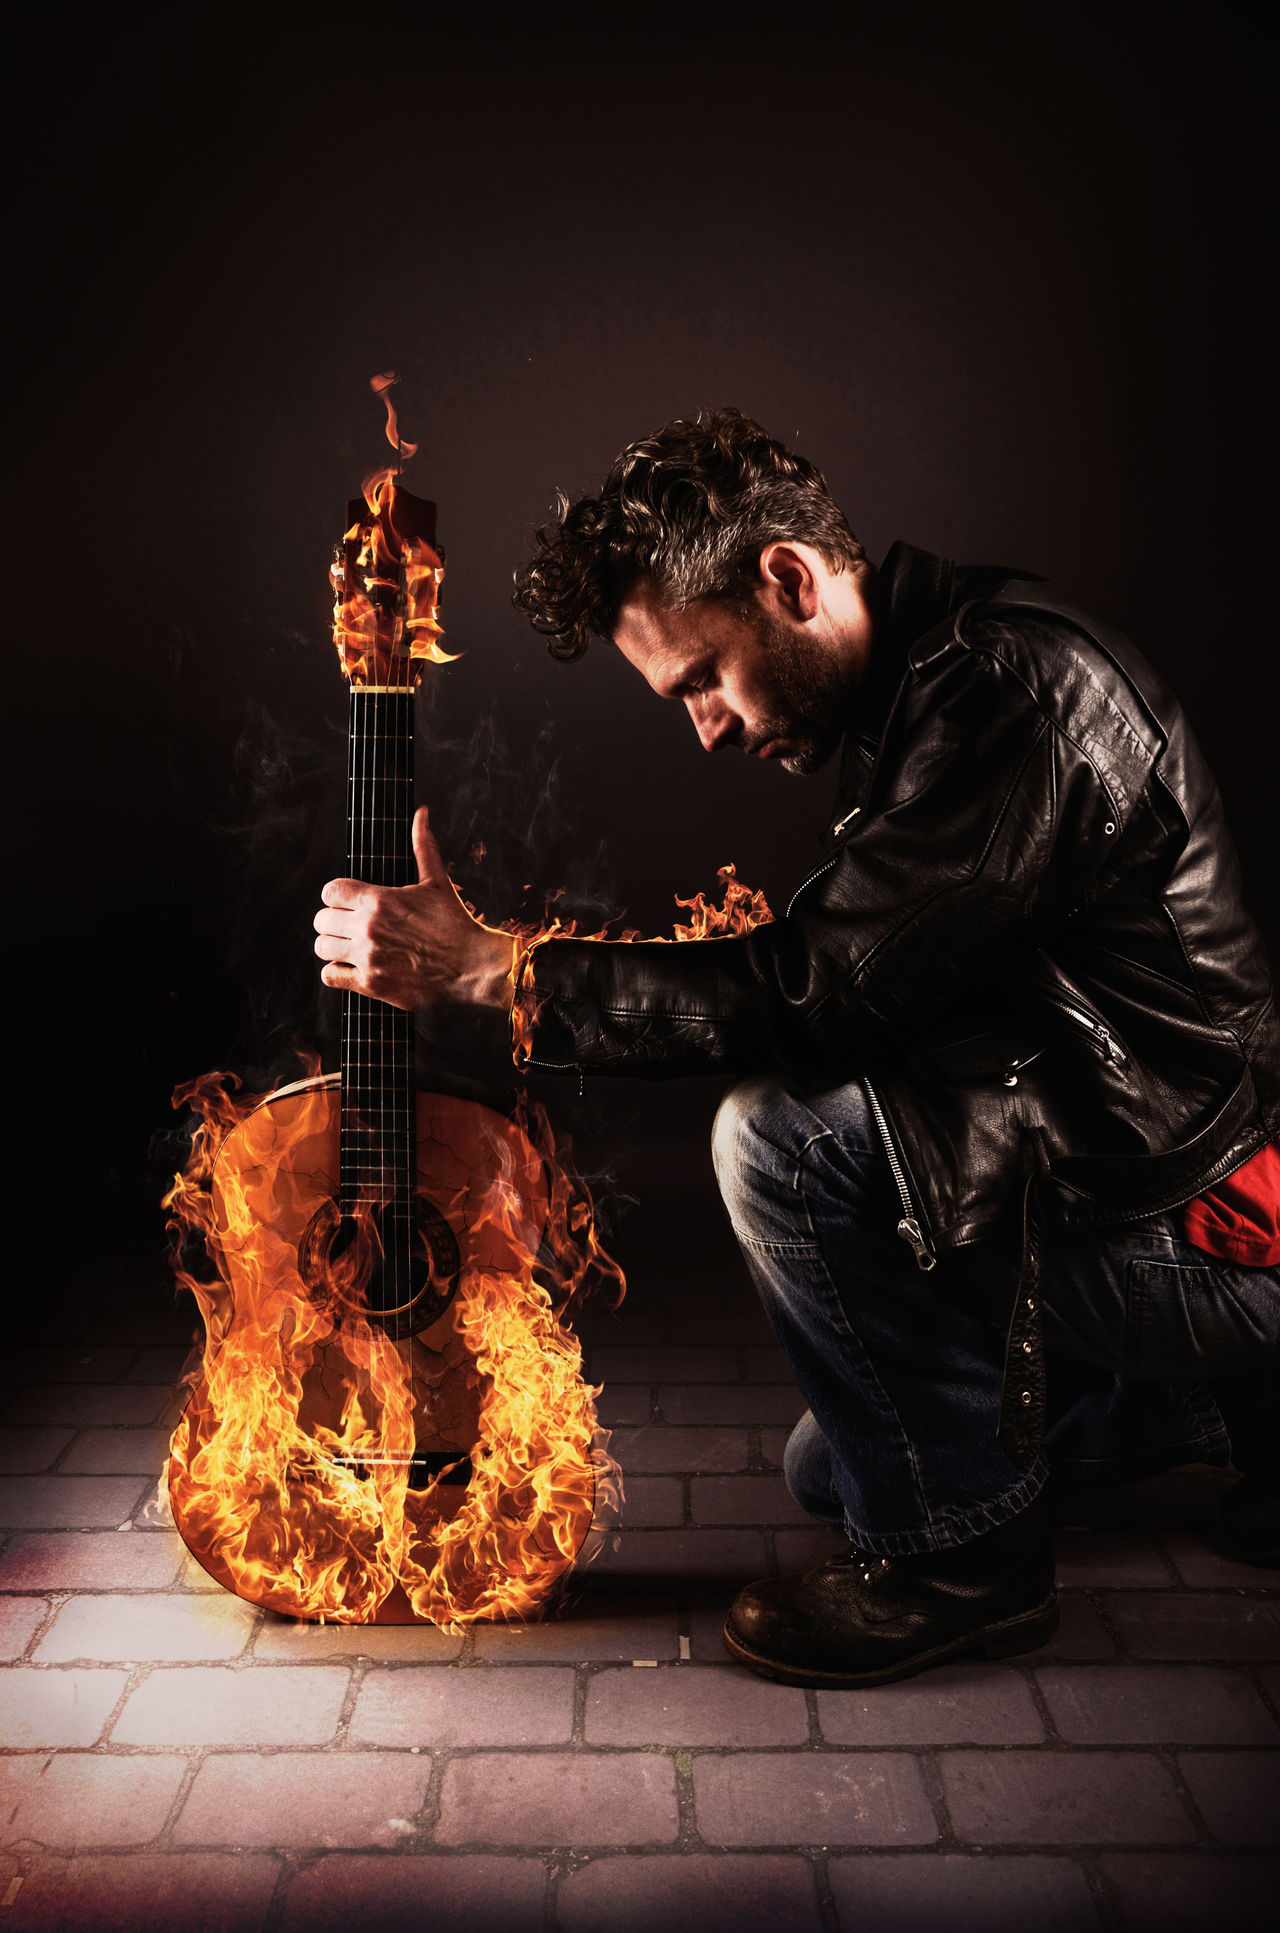 Burning guitar Burn Burning Burning Casual Clothing Crouching Fire Full Length Guitar Holding Hot Indoors  Leather Jacket Leisure Activity Mid Adult Music Musician Night One Man Only One Person People Real People Sitting Standing Young Adult